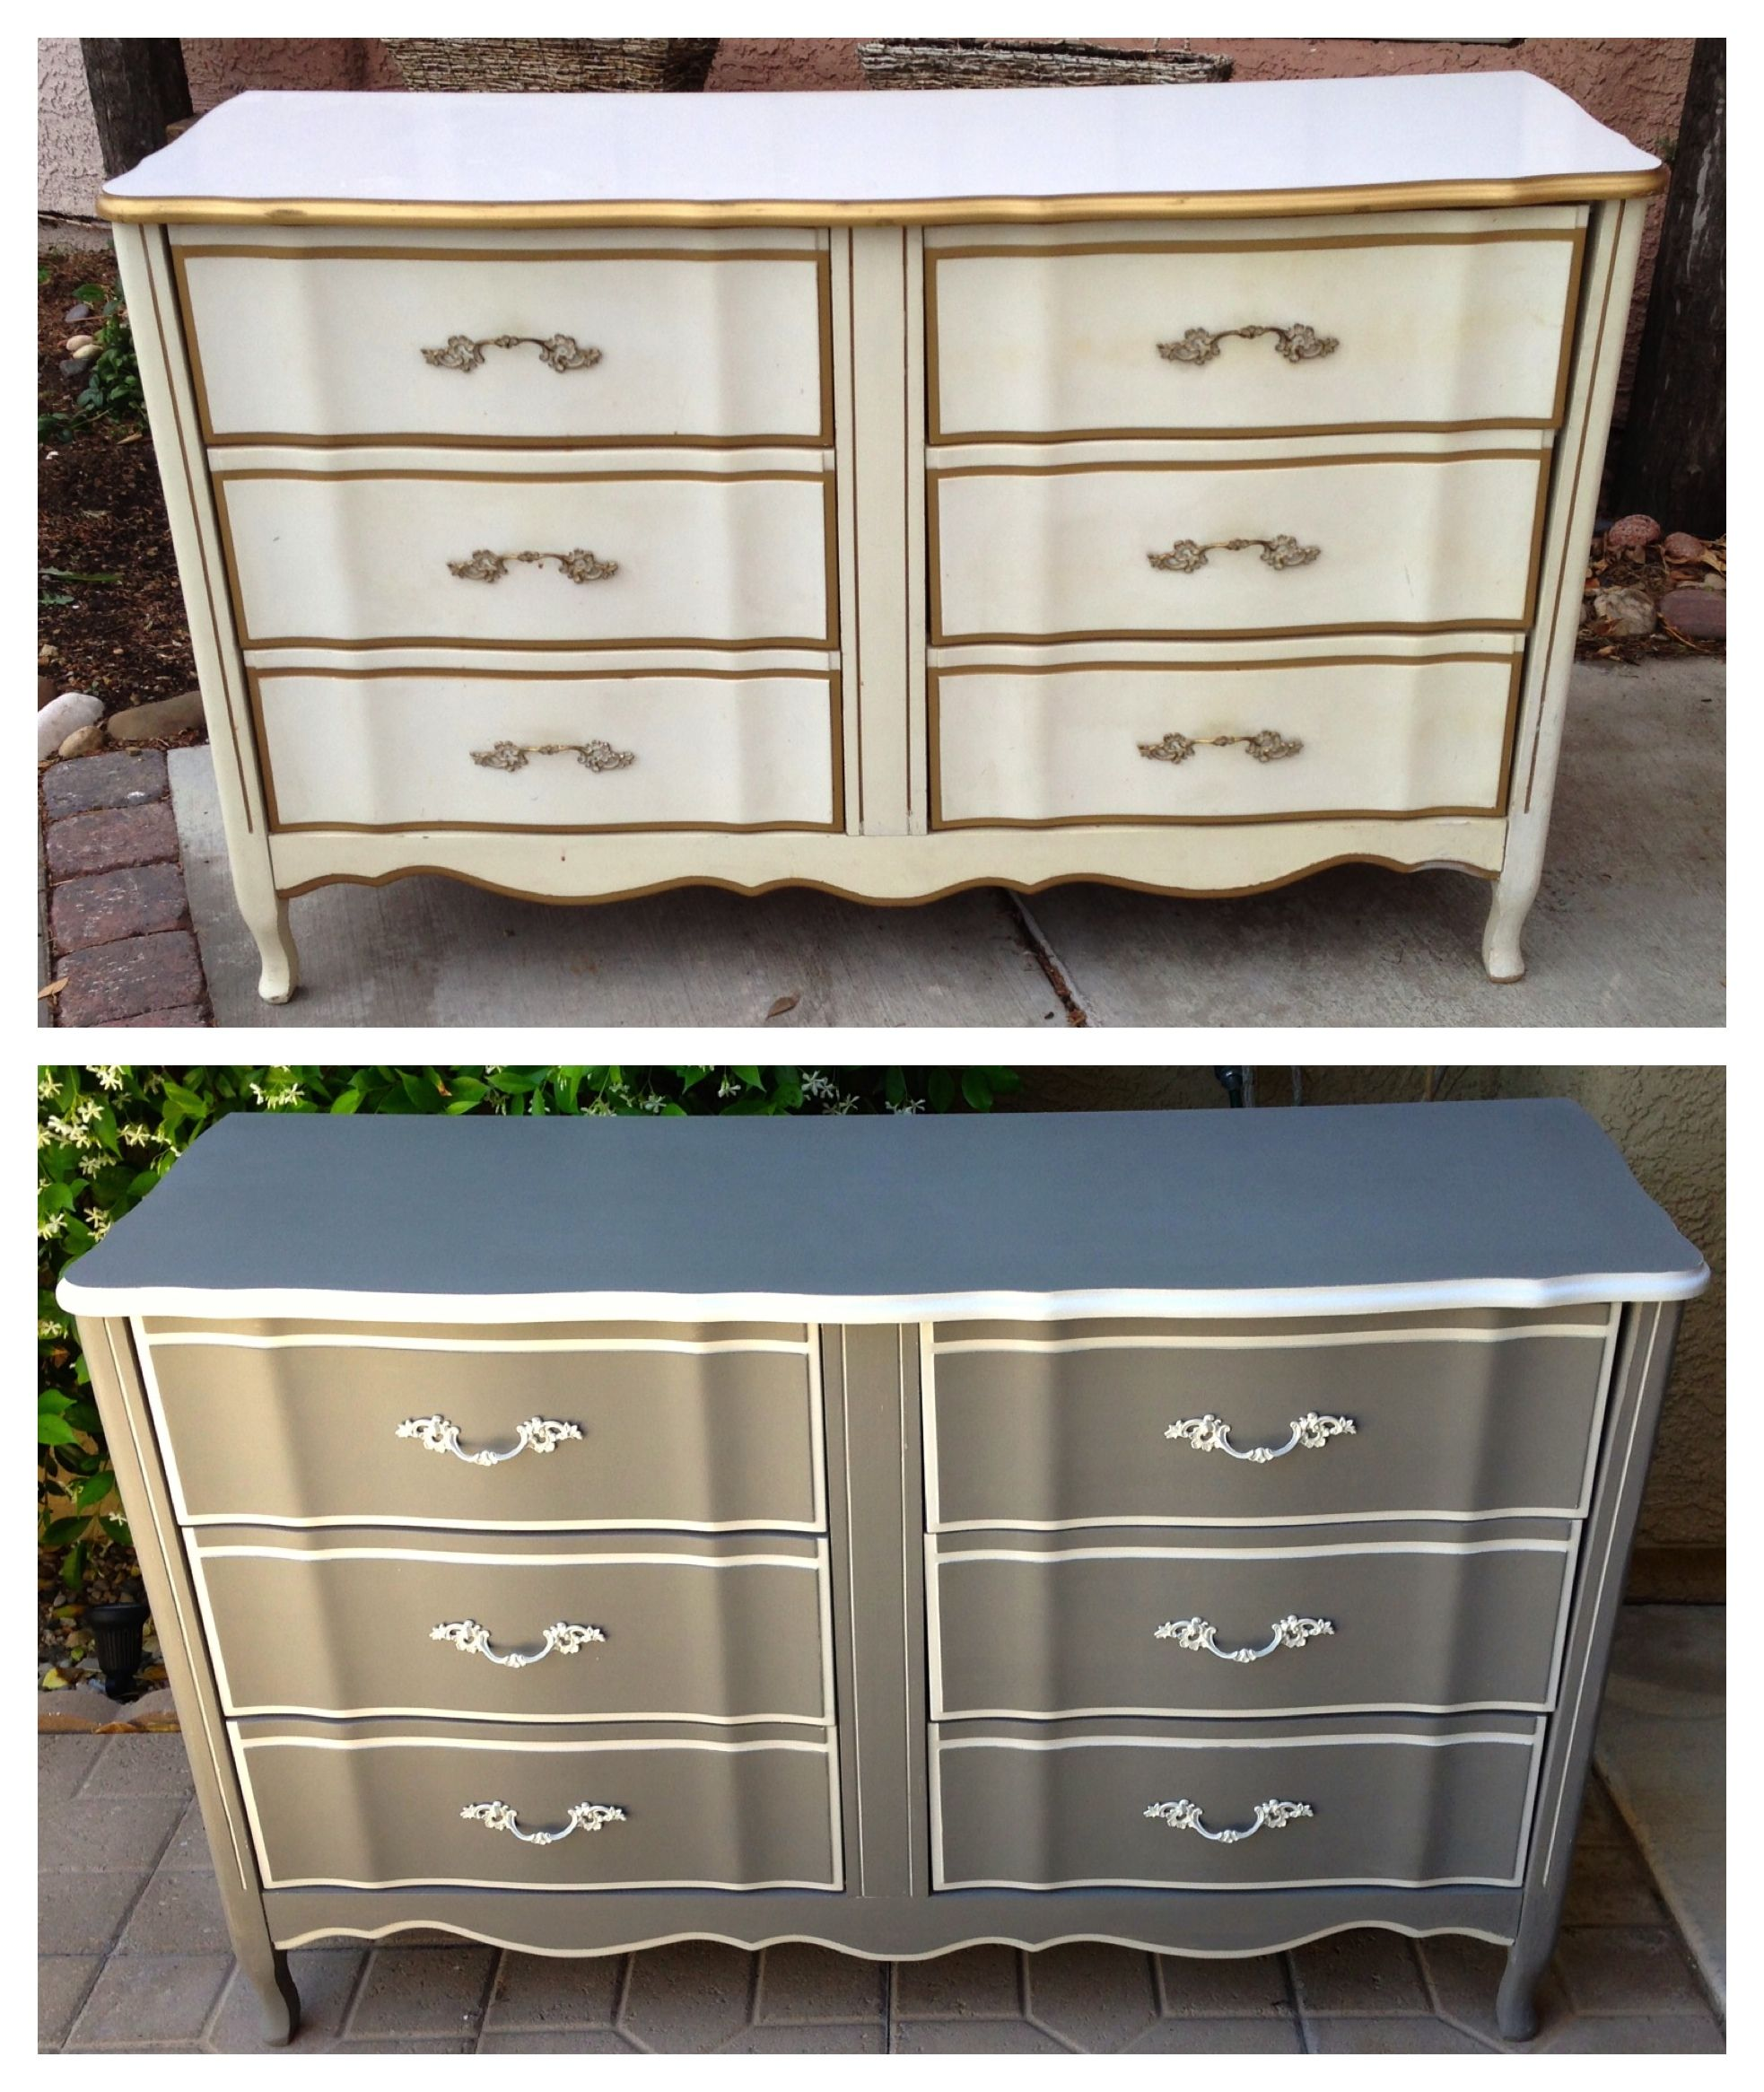 Www.facebook.com/... Vintage, Shabby, Refinished, Painted